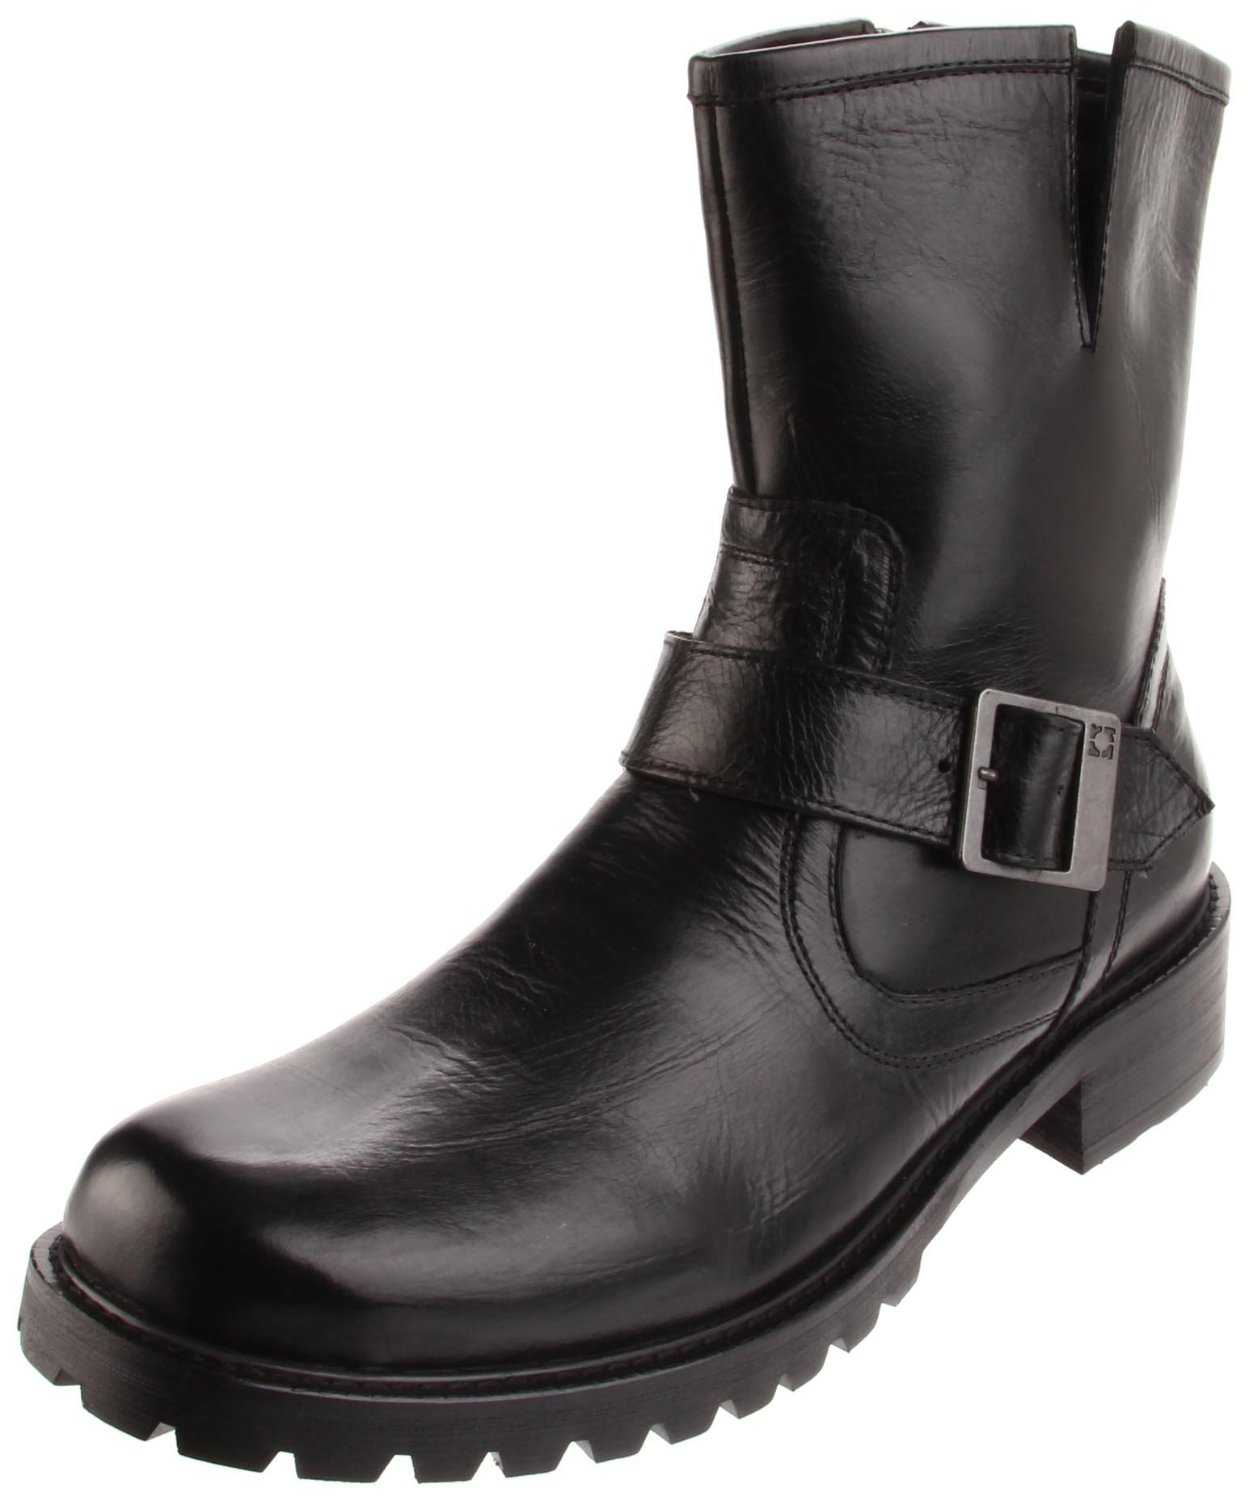 kenneth cole reaction mens march on lug sole boot in black